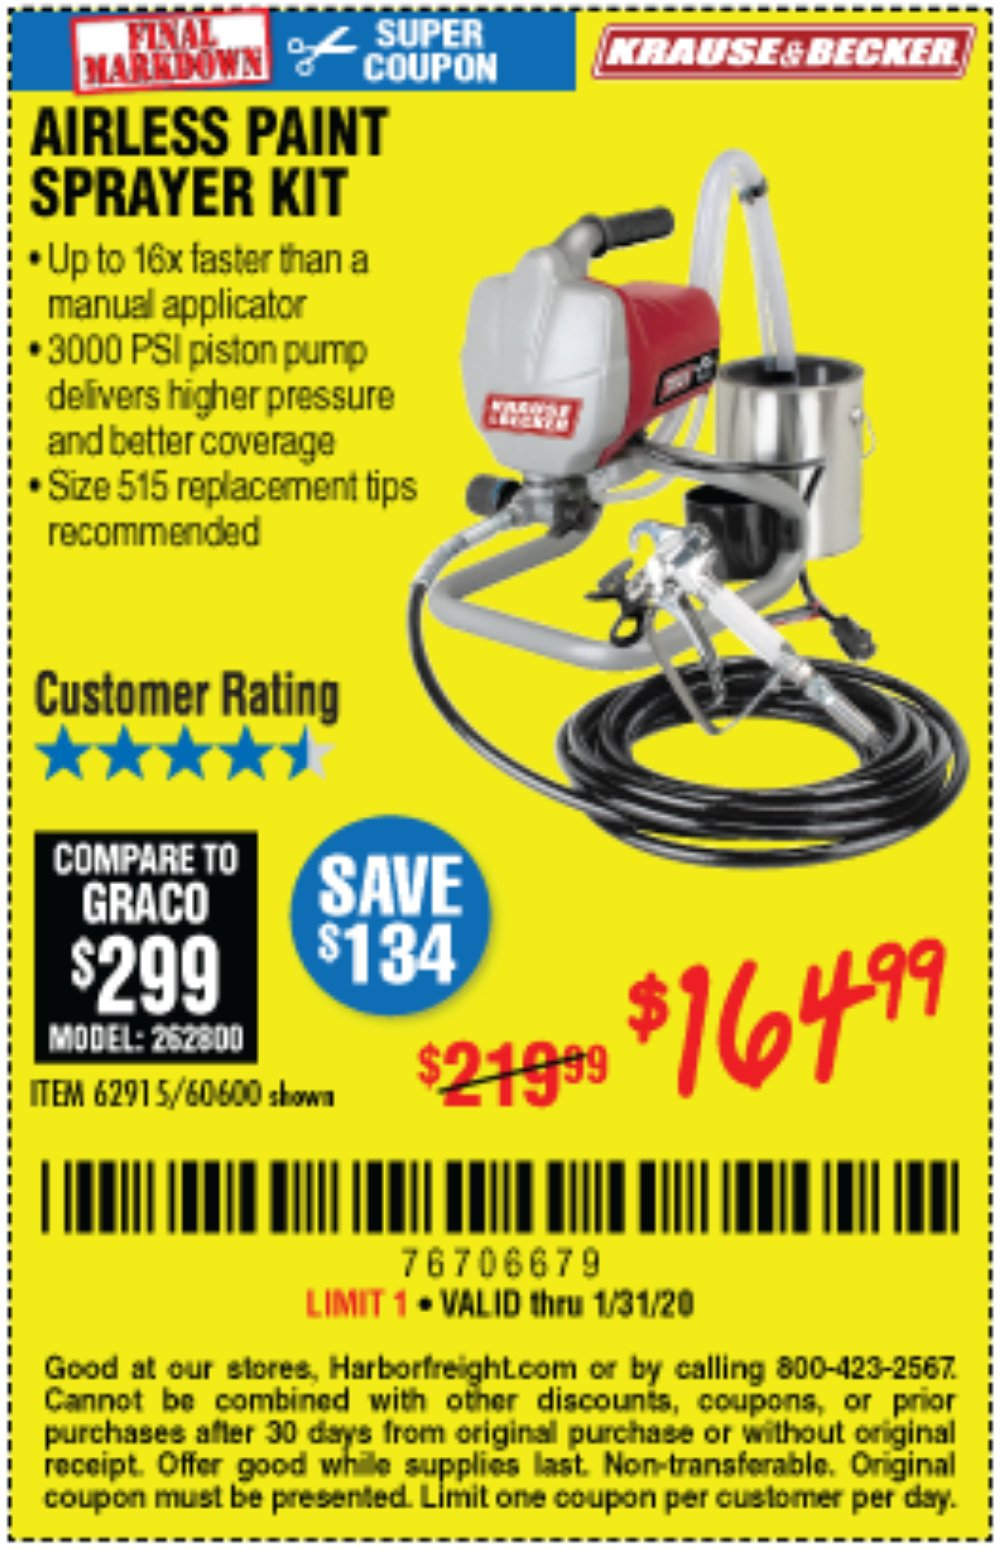 Harbor Freight Coupon, HF Coupons - Airless Paint Sprayer Kit